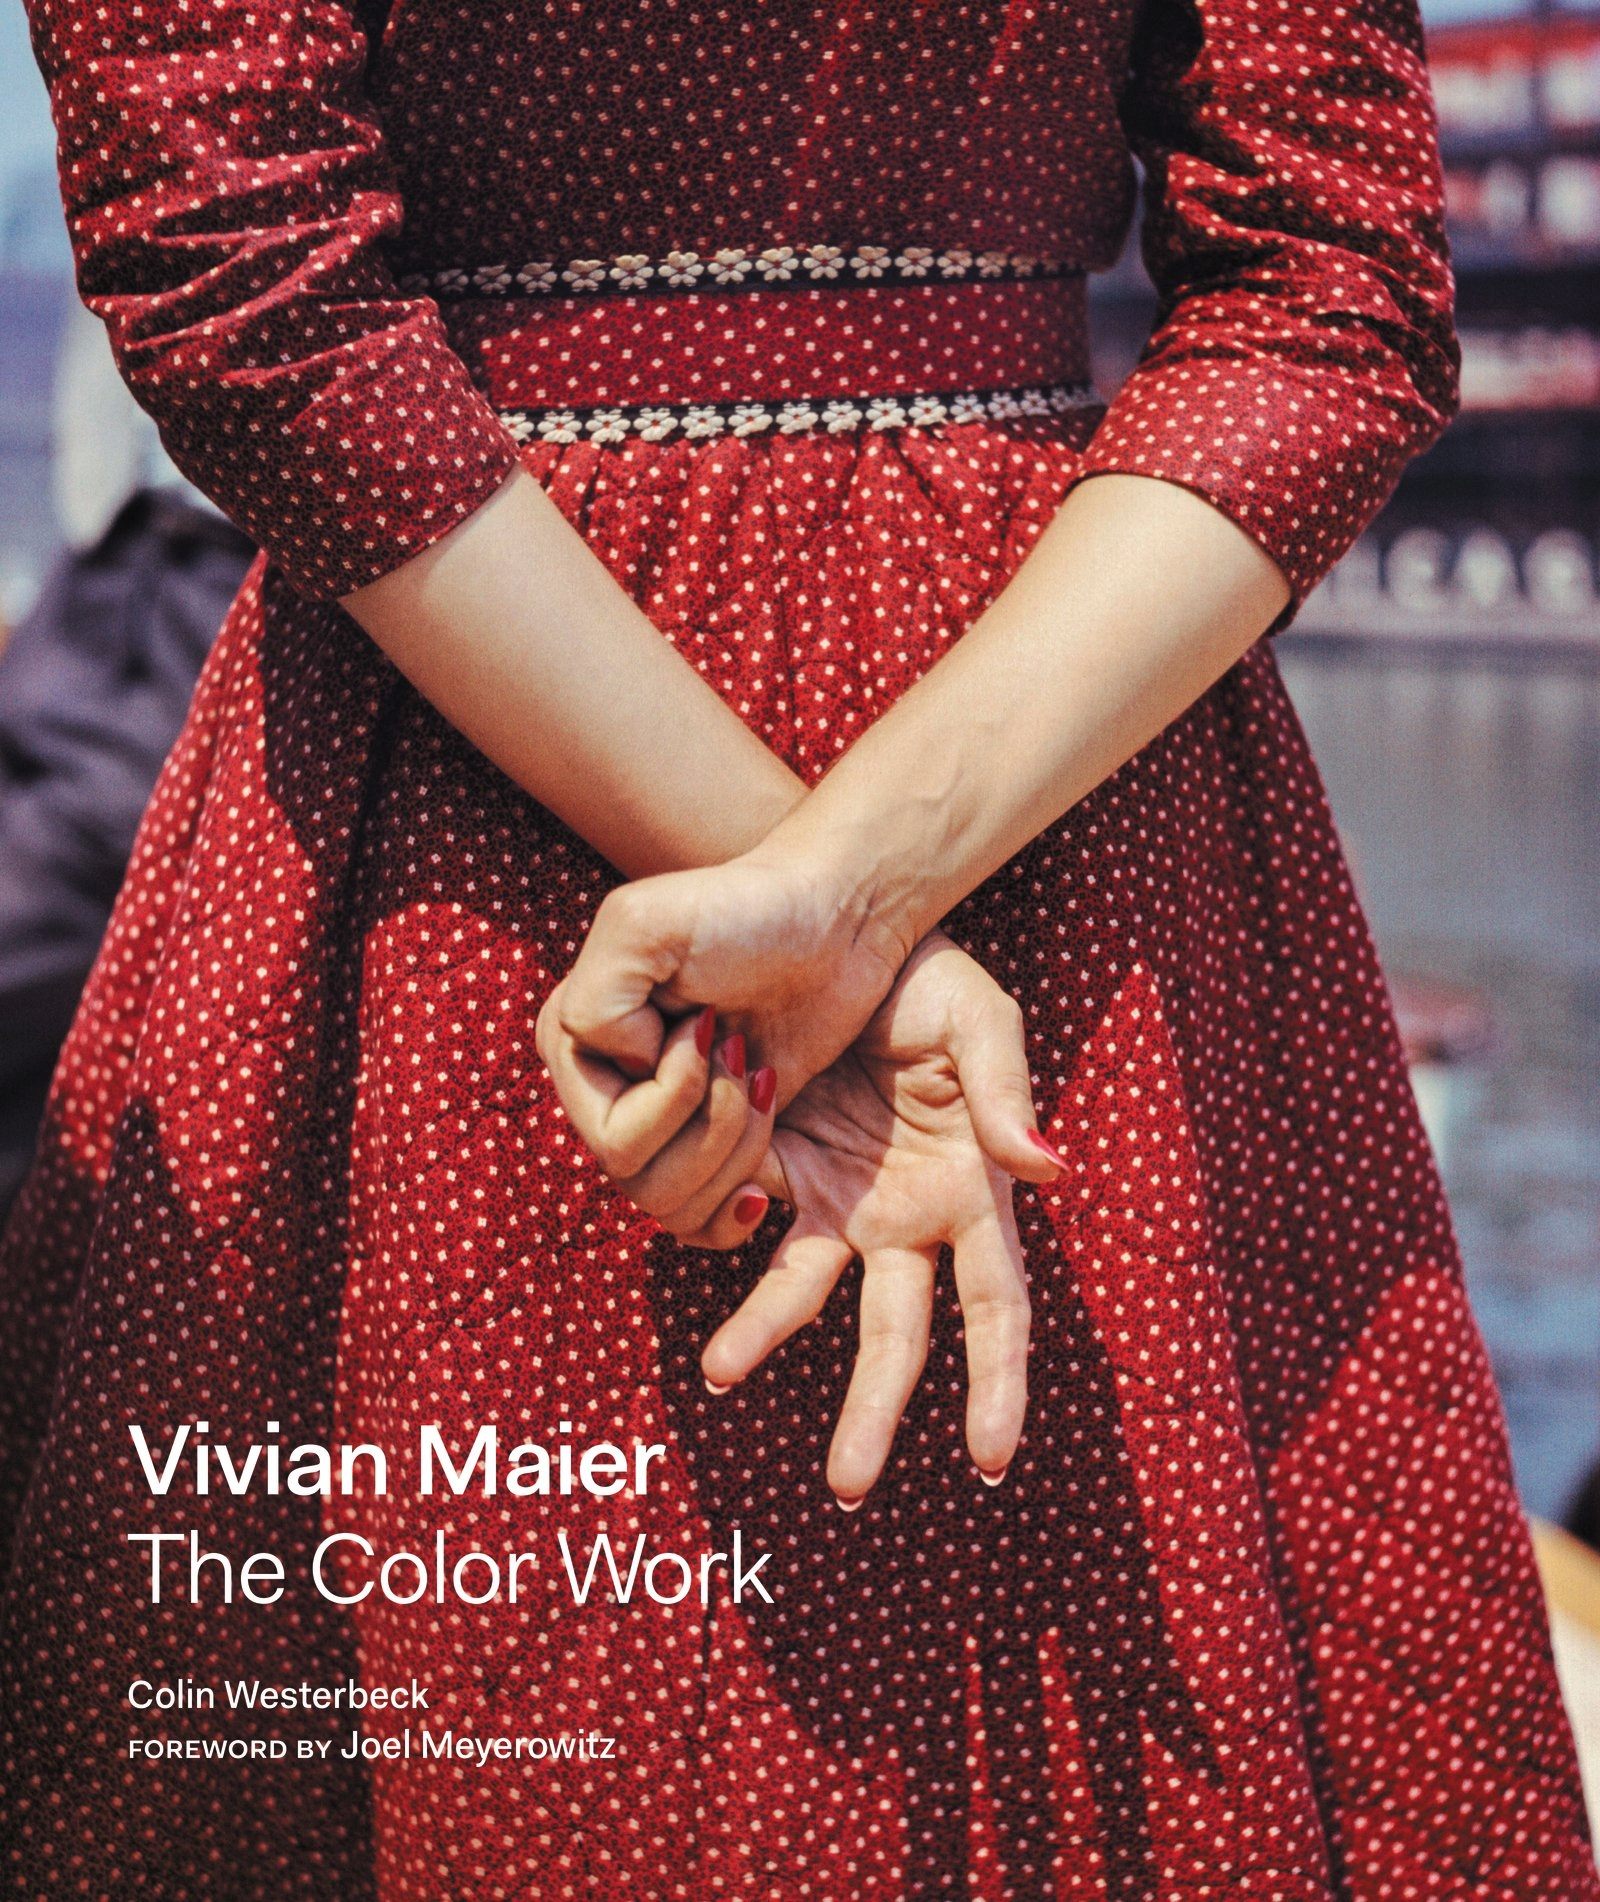 Vivian Maier: The Color Work Colin Westerbeck